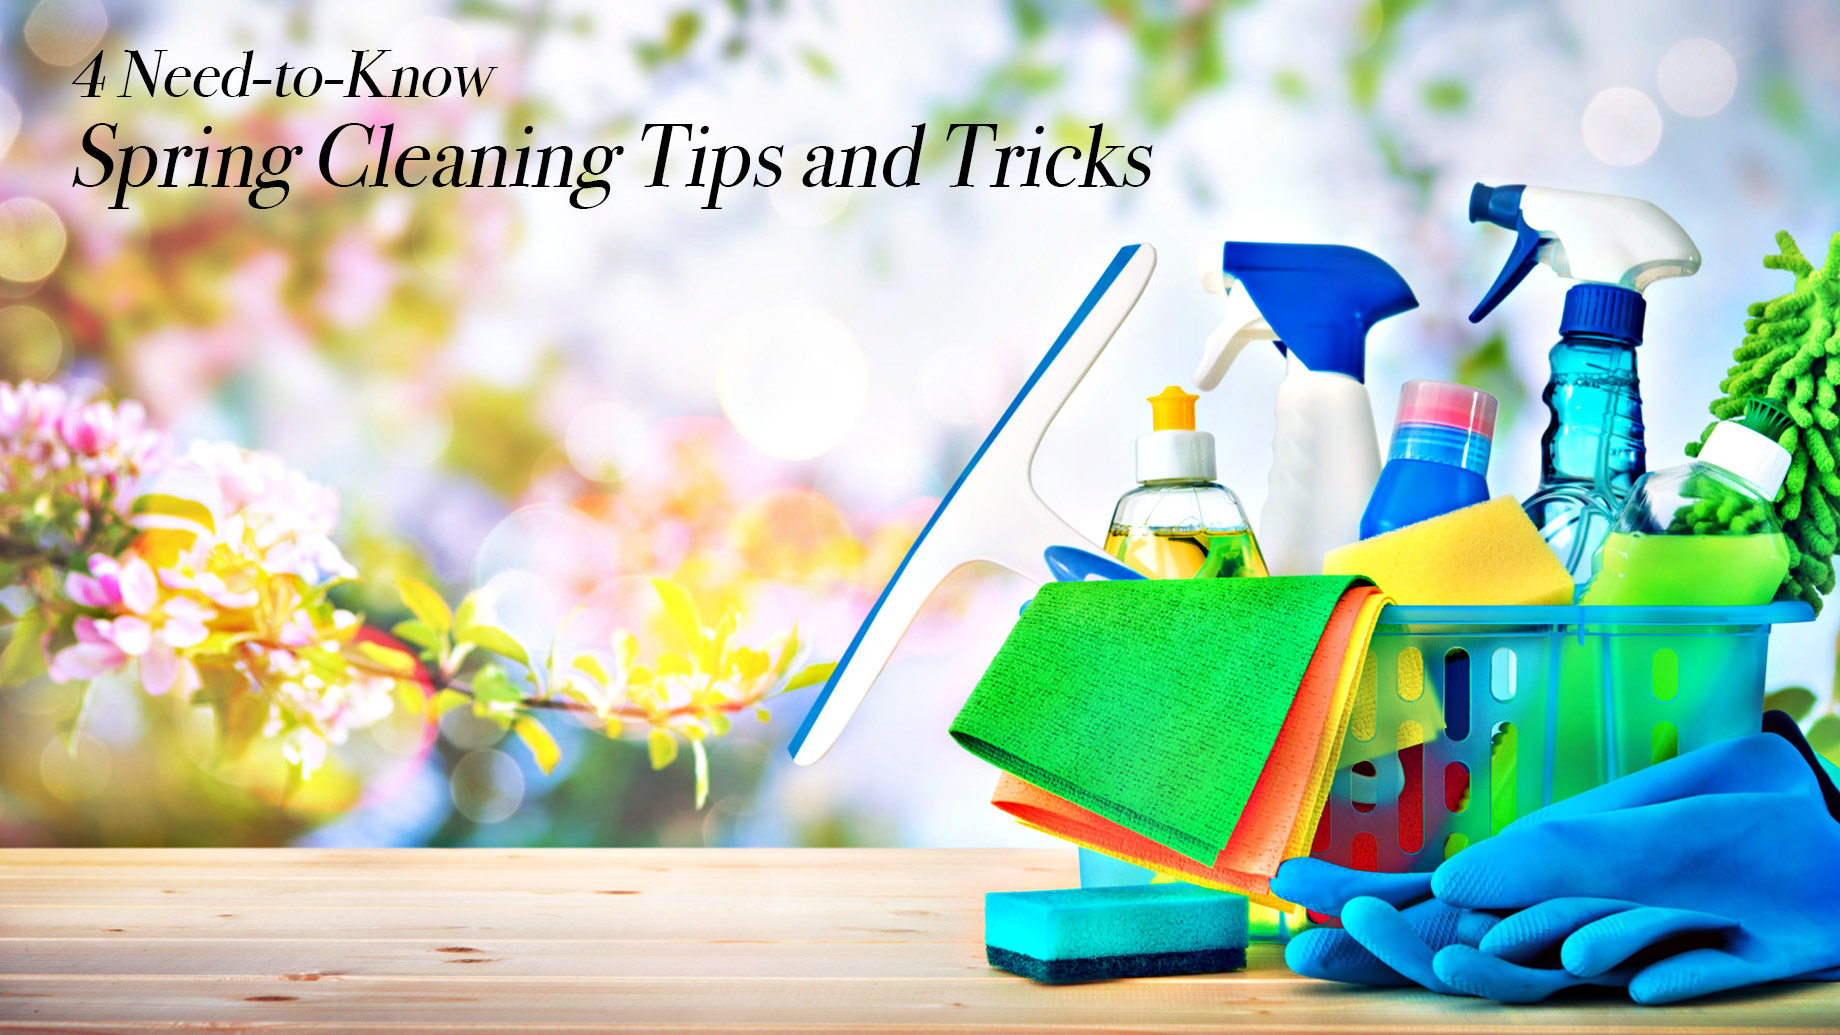 4 Need-to-Know Spring Cleaning Tips and Tricks